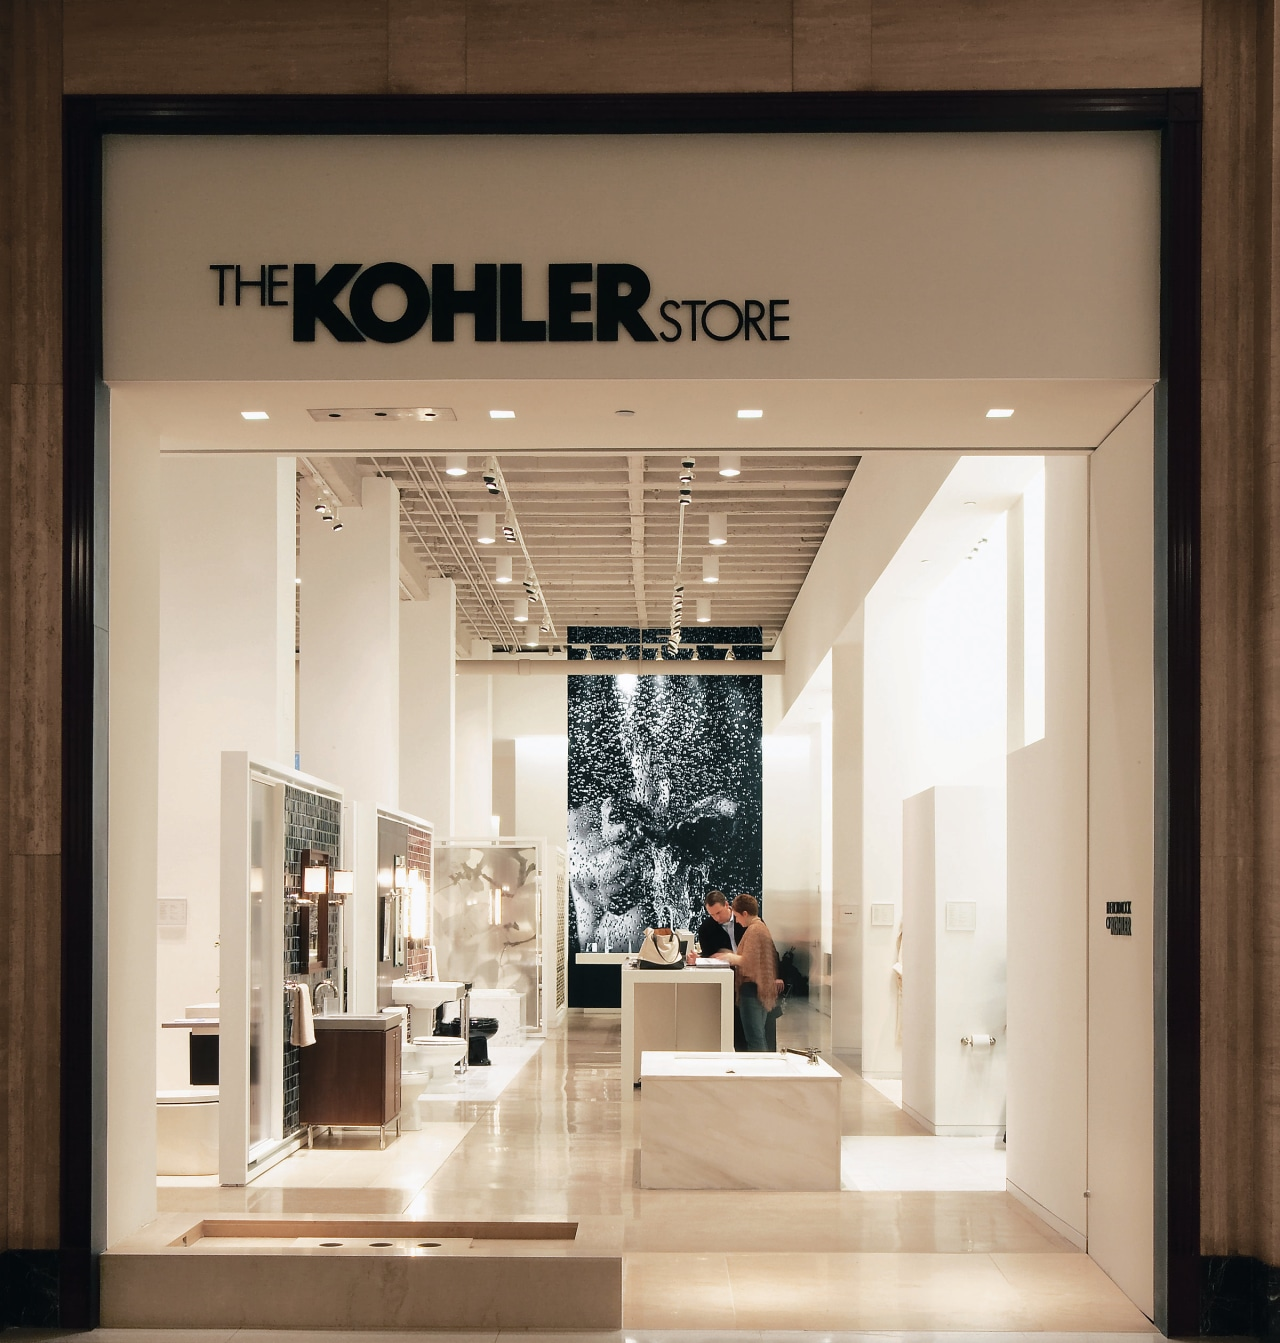 view of the new Kohler Chicago store showcasing boutique, ceiling, interior design, brown, white